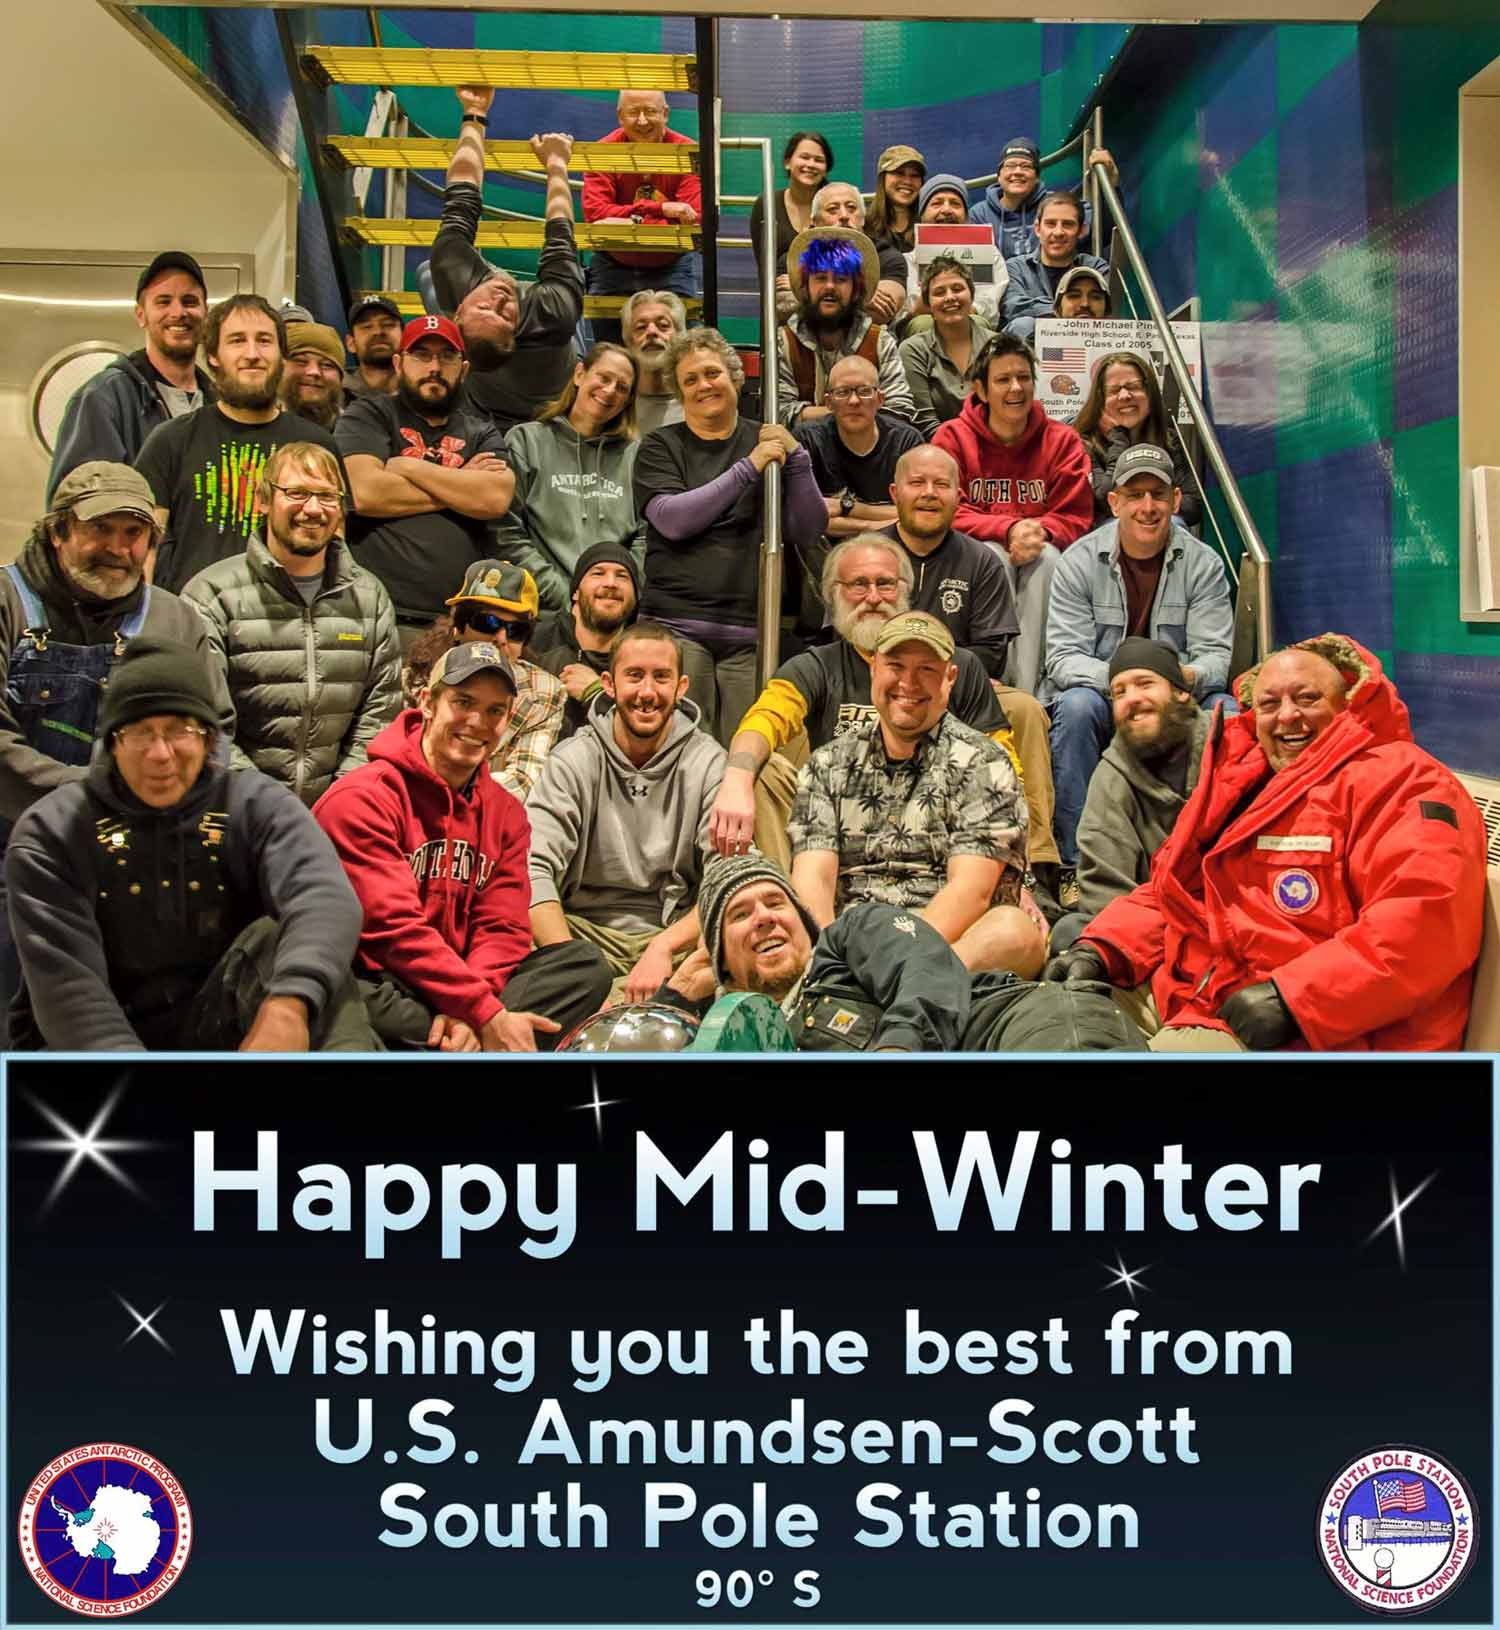 South pole winter 2015 the 2015 midwinter greeting card kristyandbryce Choice Image